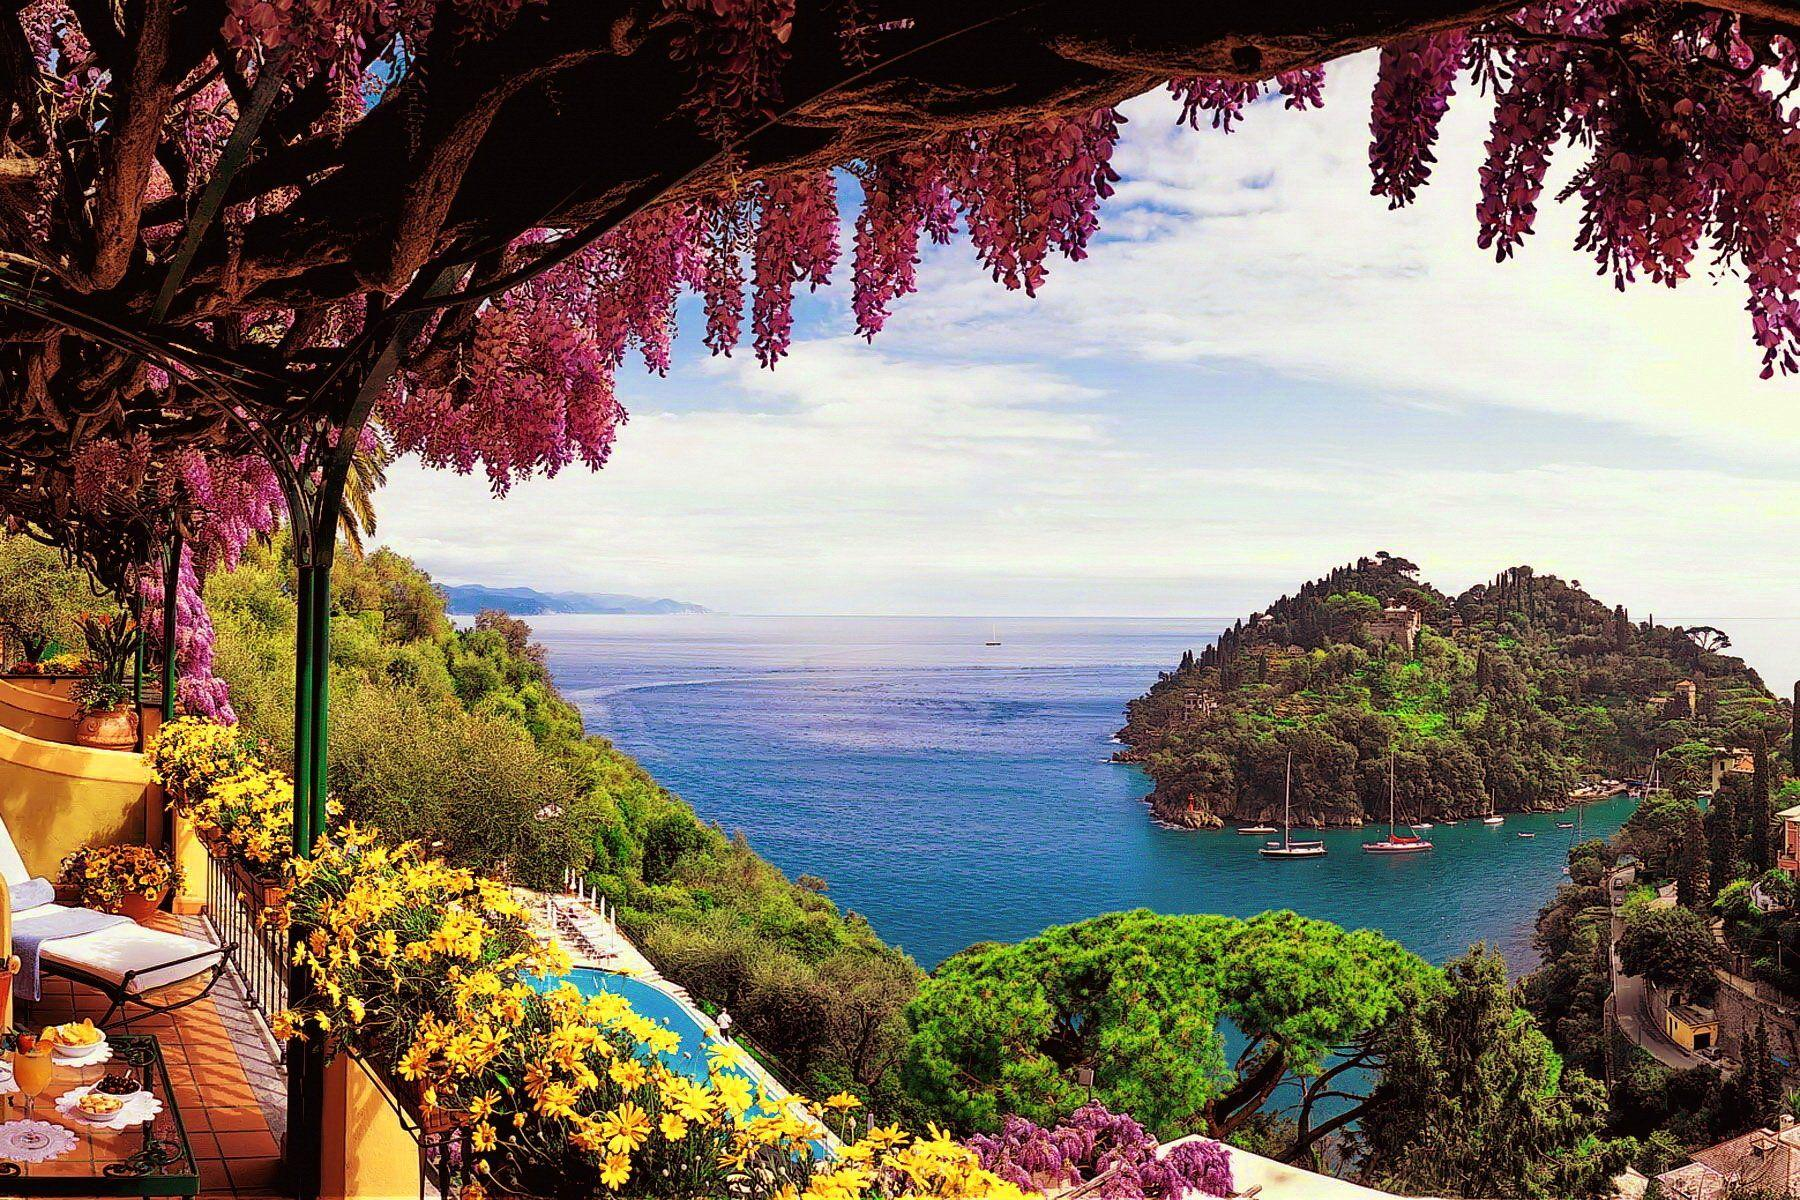 View From Amalfi Coast in Italy Wallpapers and Backgrounds